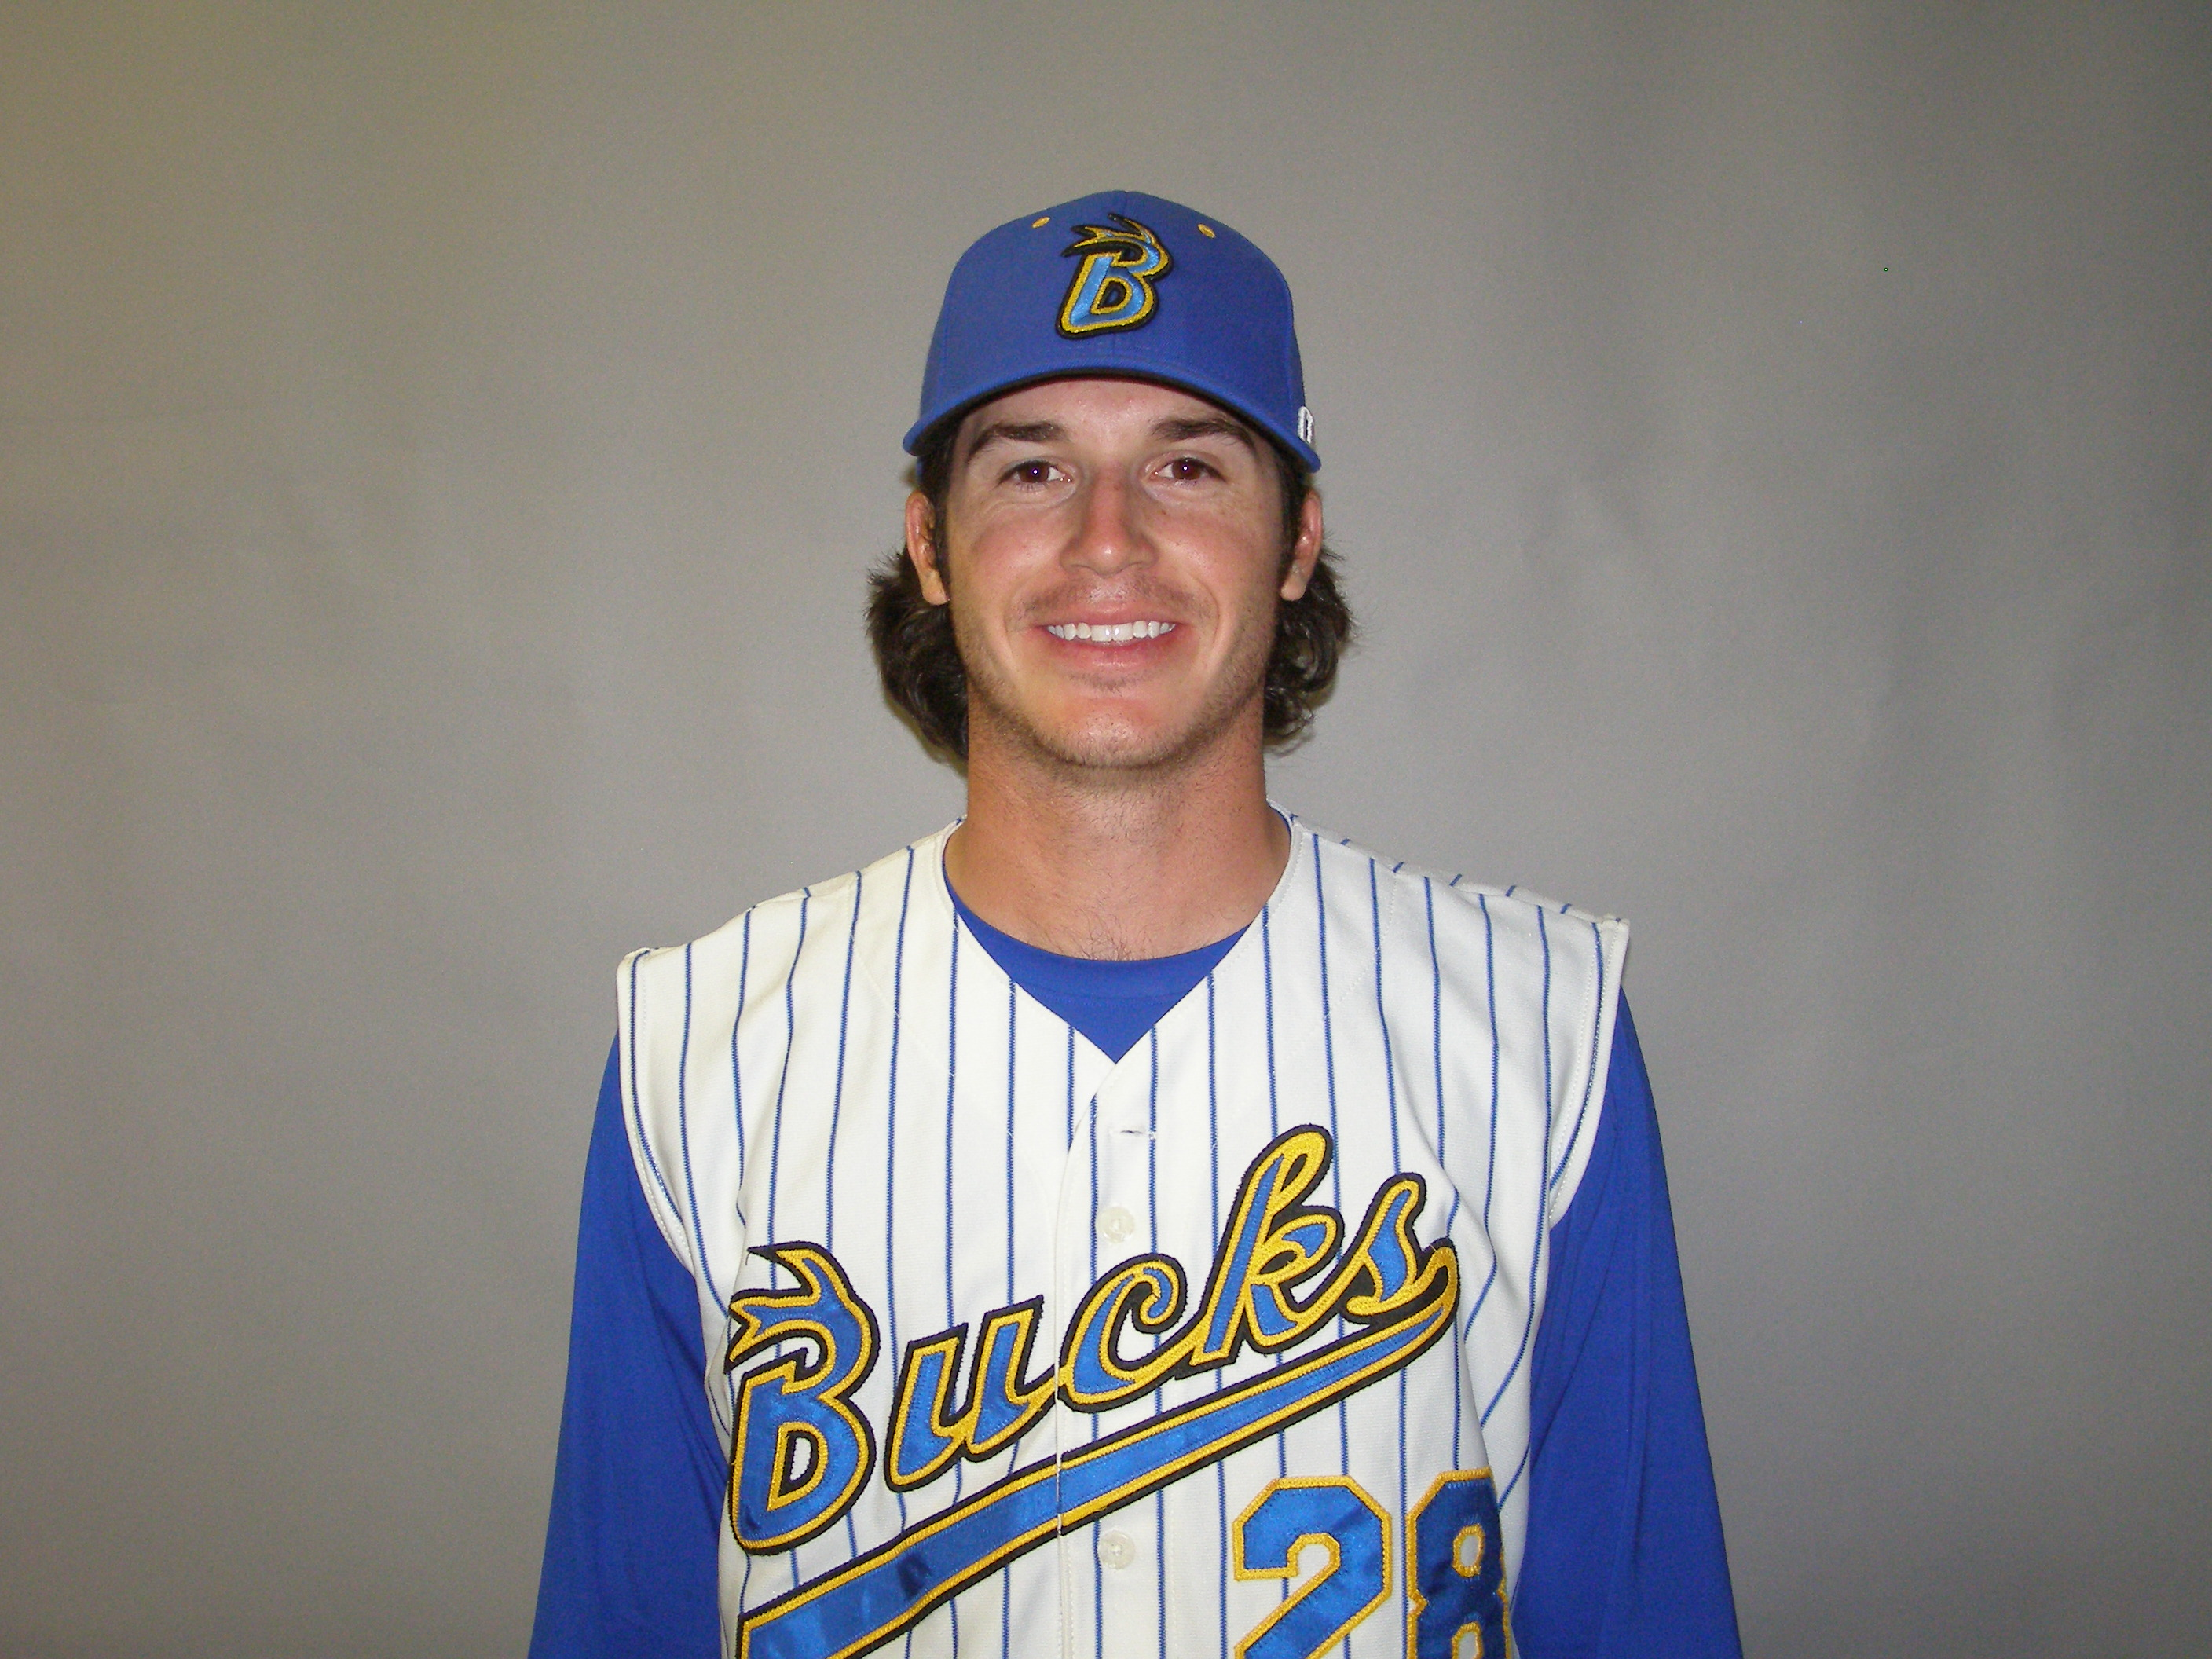 b44bf2ed7 Sor ia finished his Bucks career hitting .271 with 43 RBI and 9 stolen  bases.